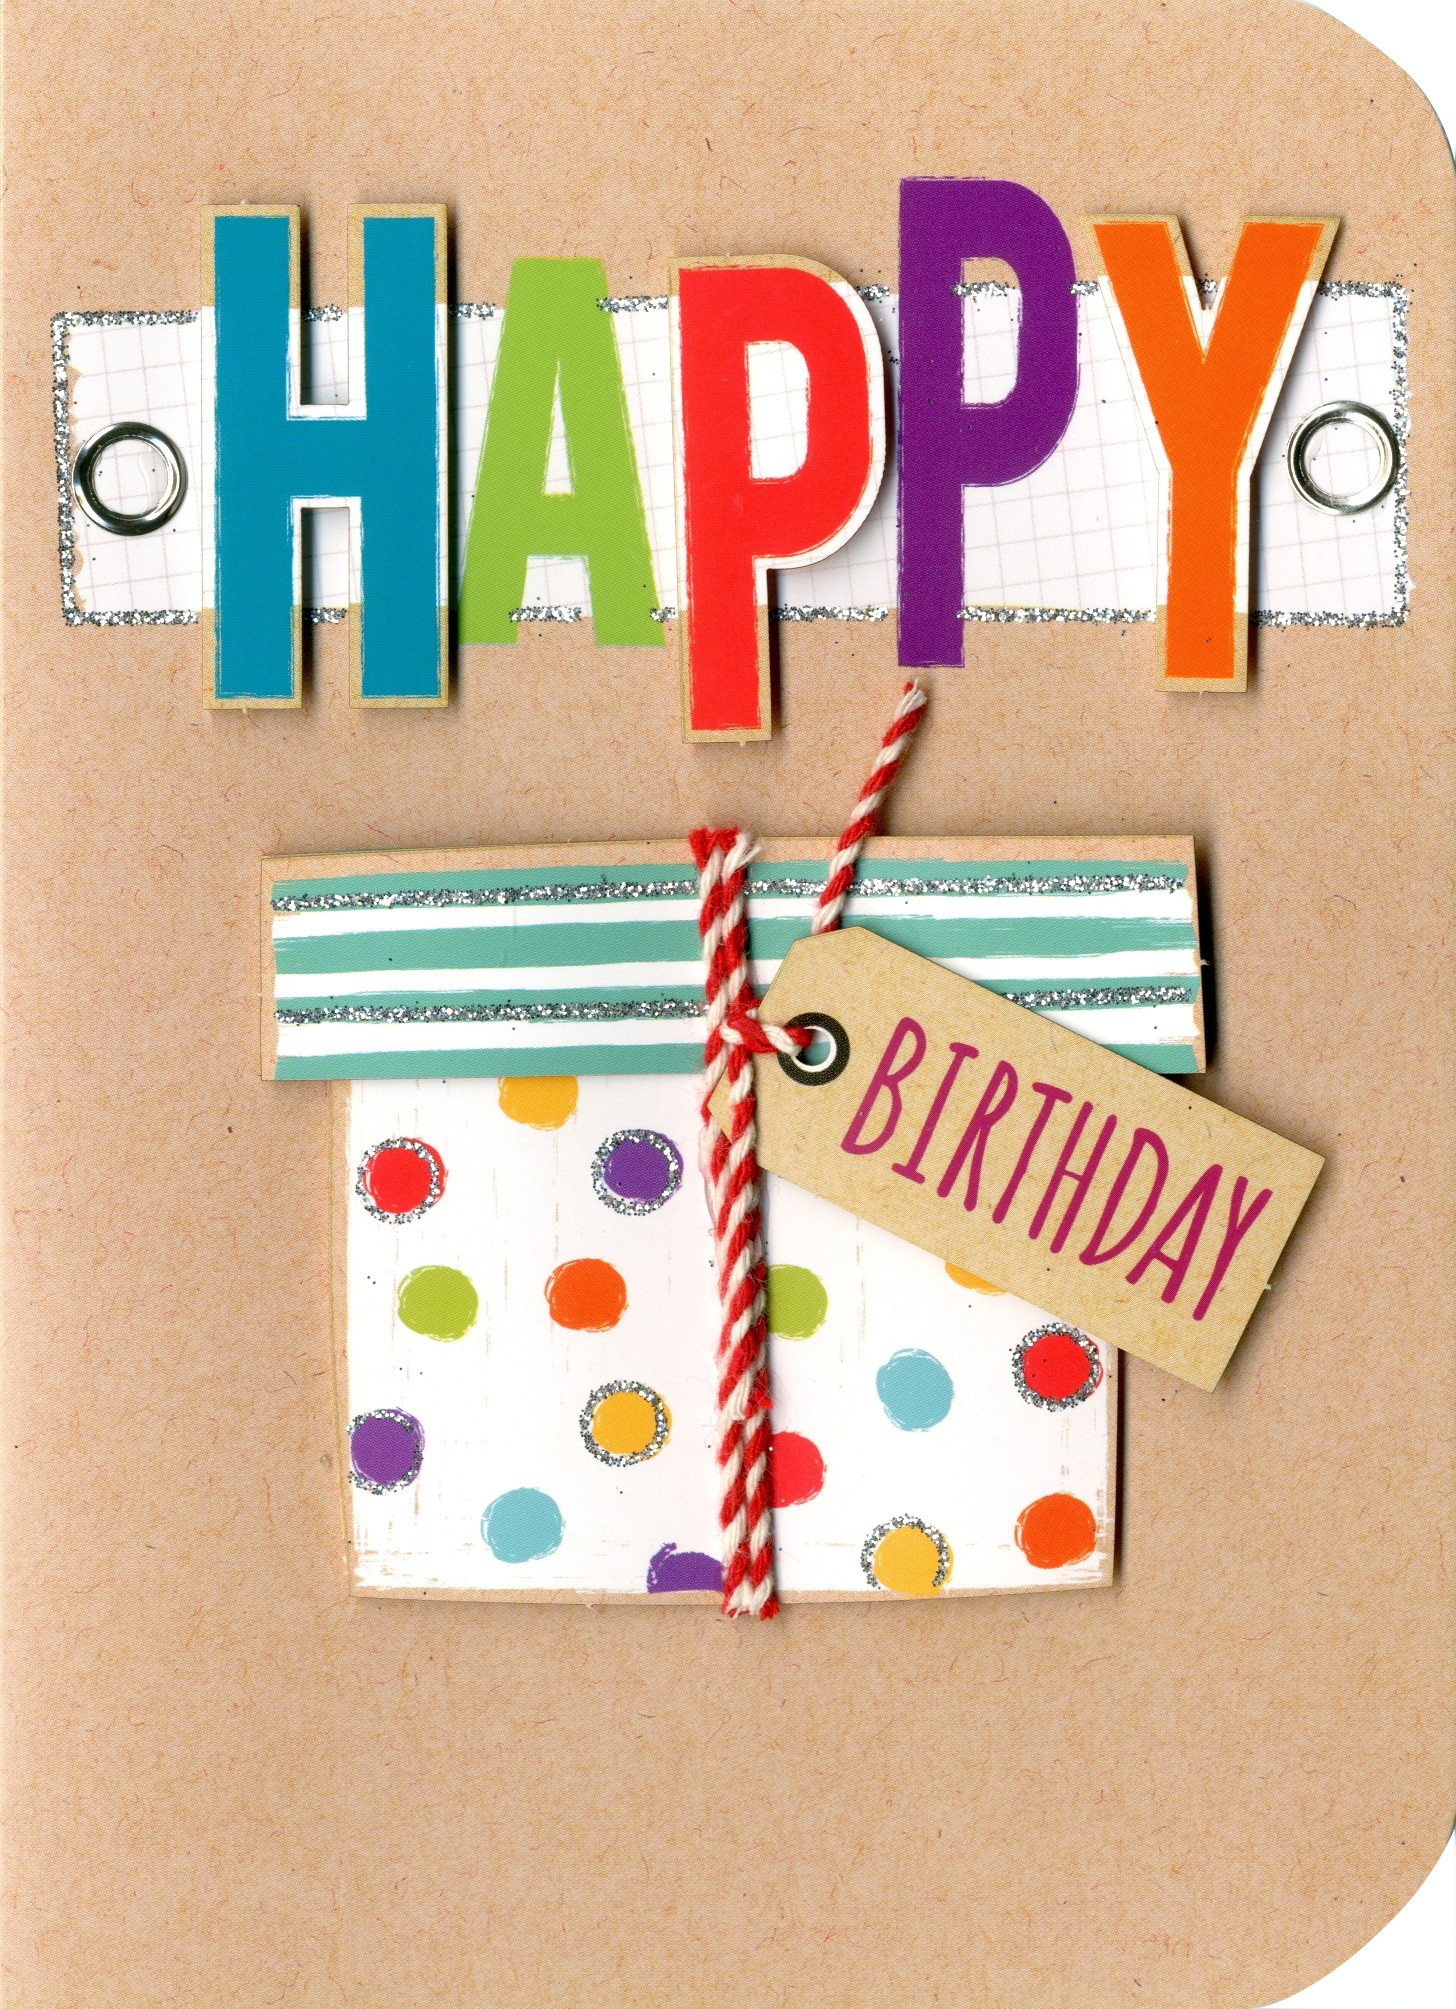 Happy birthday embellished greeting card cards love kates happy birthday embellished greeting card kristyandbryce Image collections